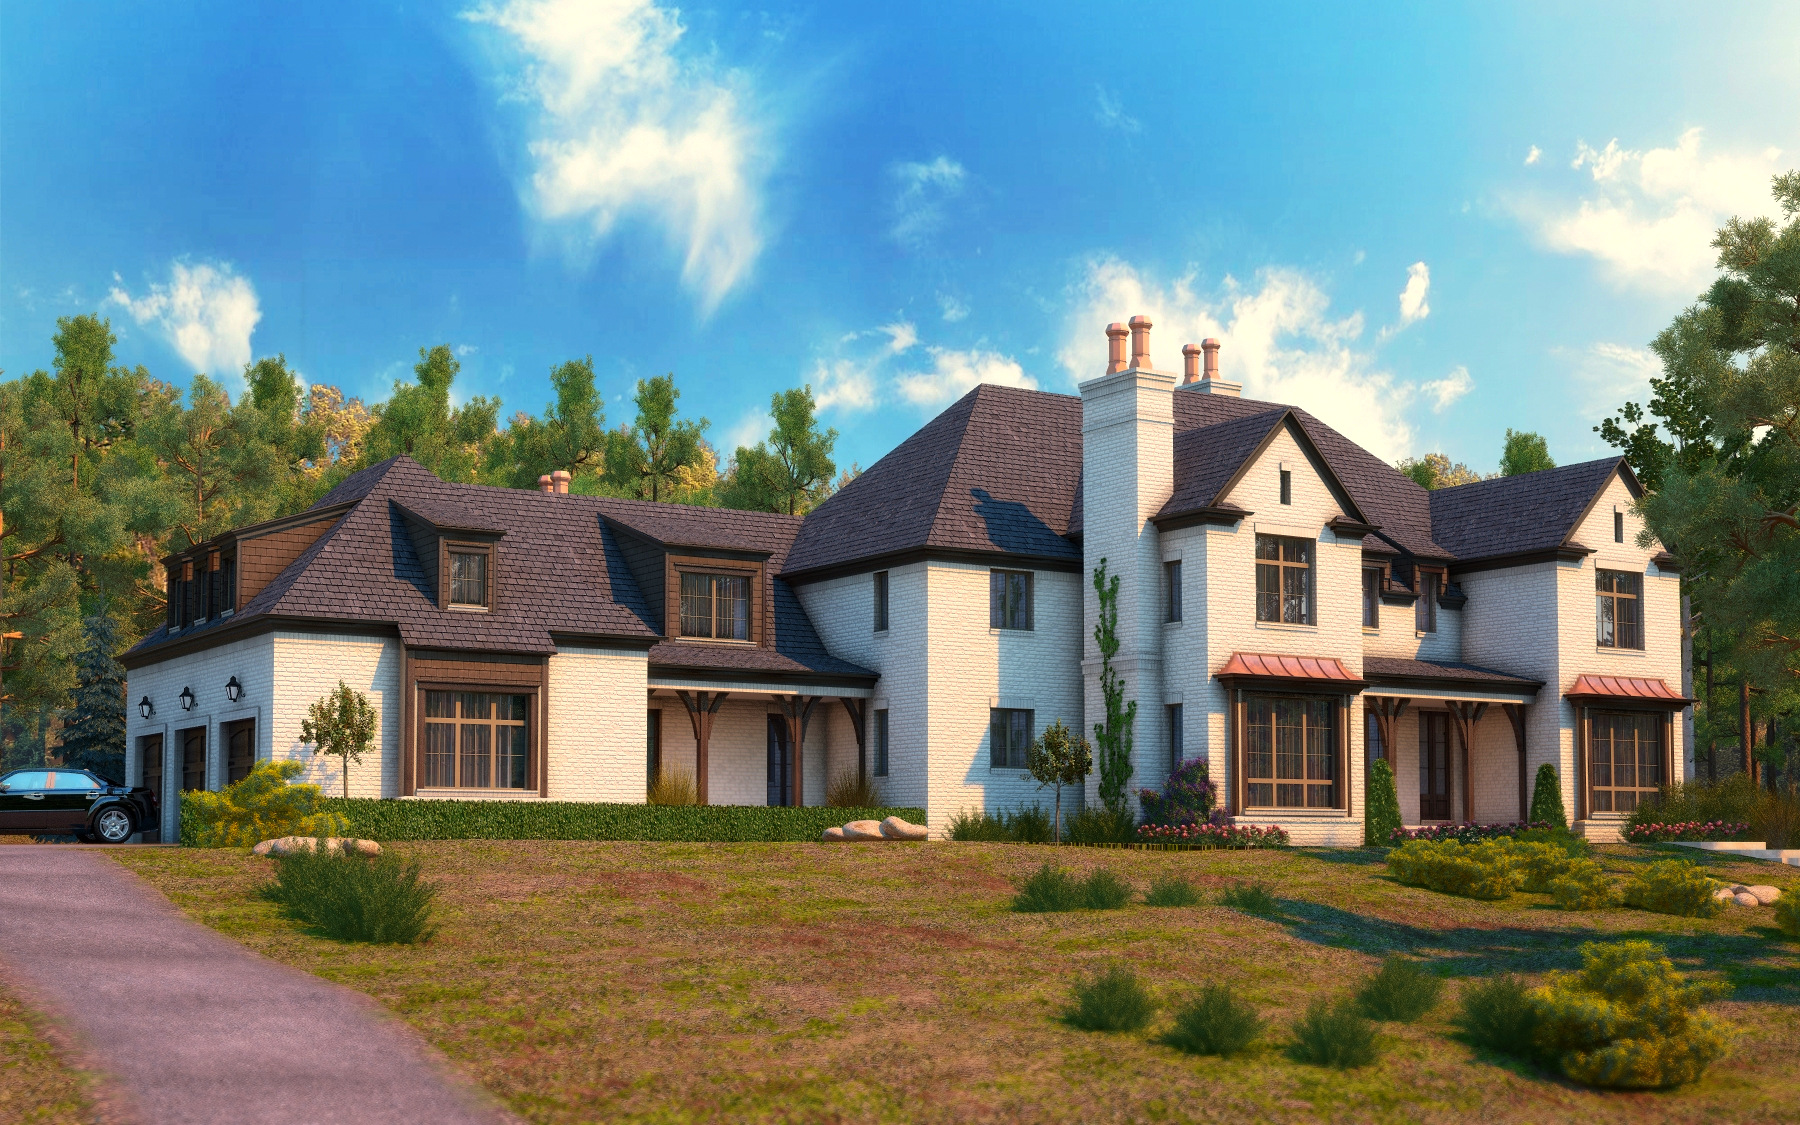 Large Home Exterior Front By Zodevdesign On DeviantArt